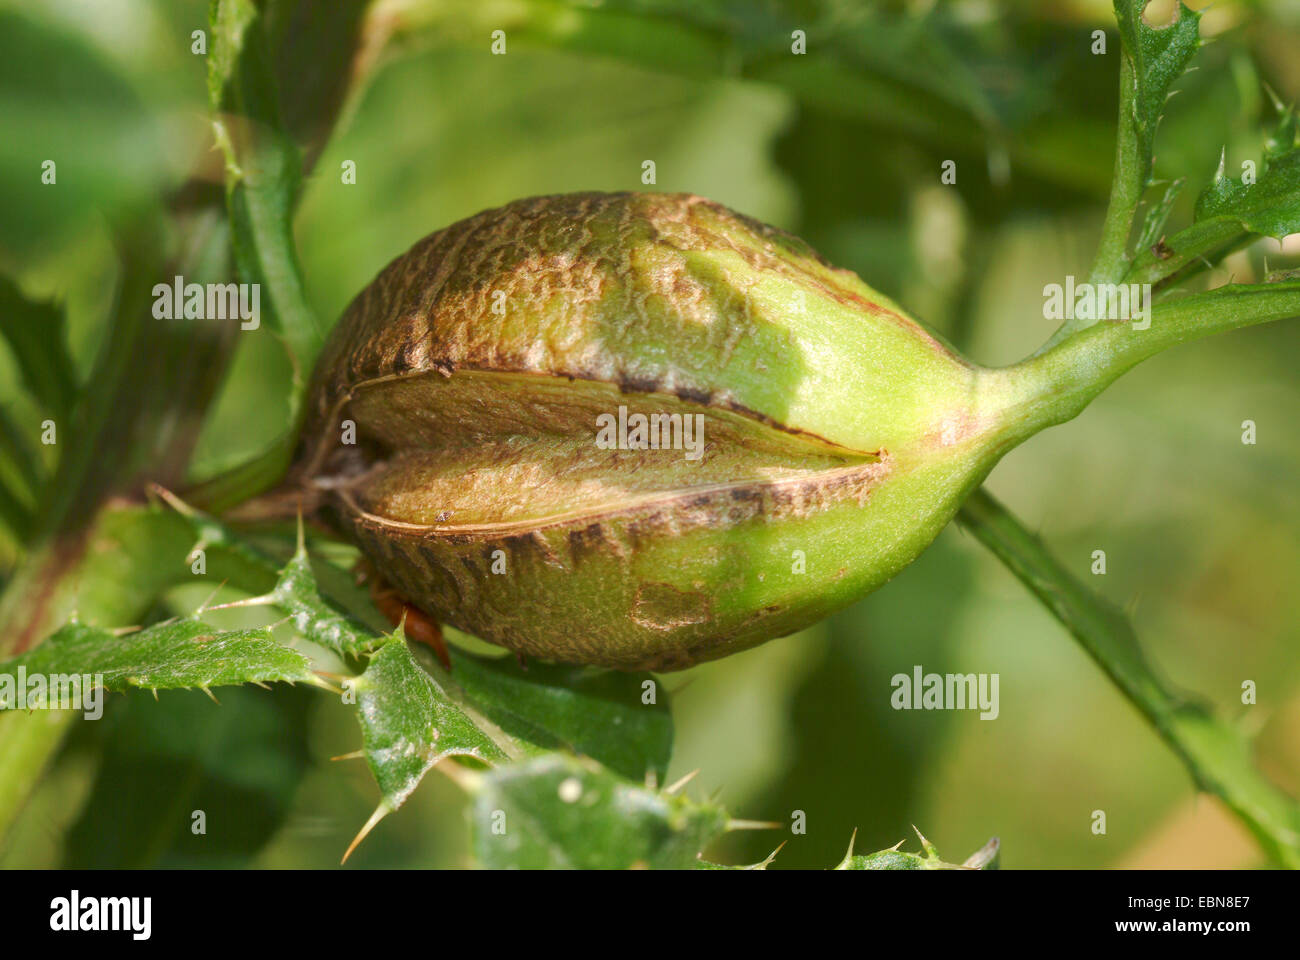 Canada thistle gall fly, Stem-gall fly (Urophora cardui), gall, Germany - Stock Image